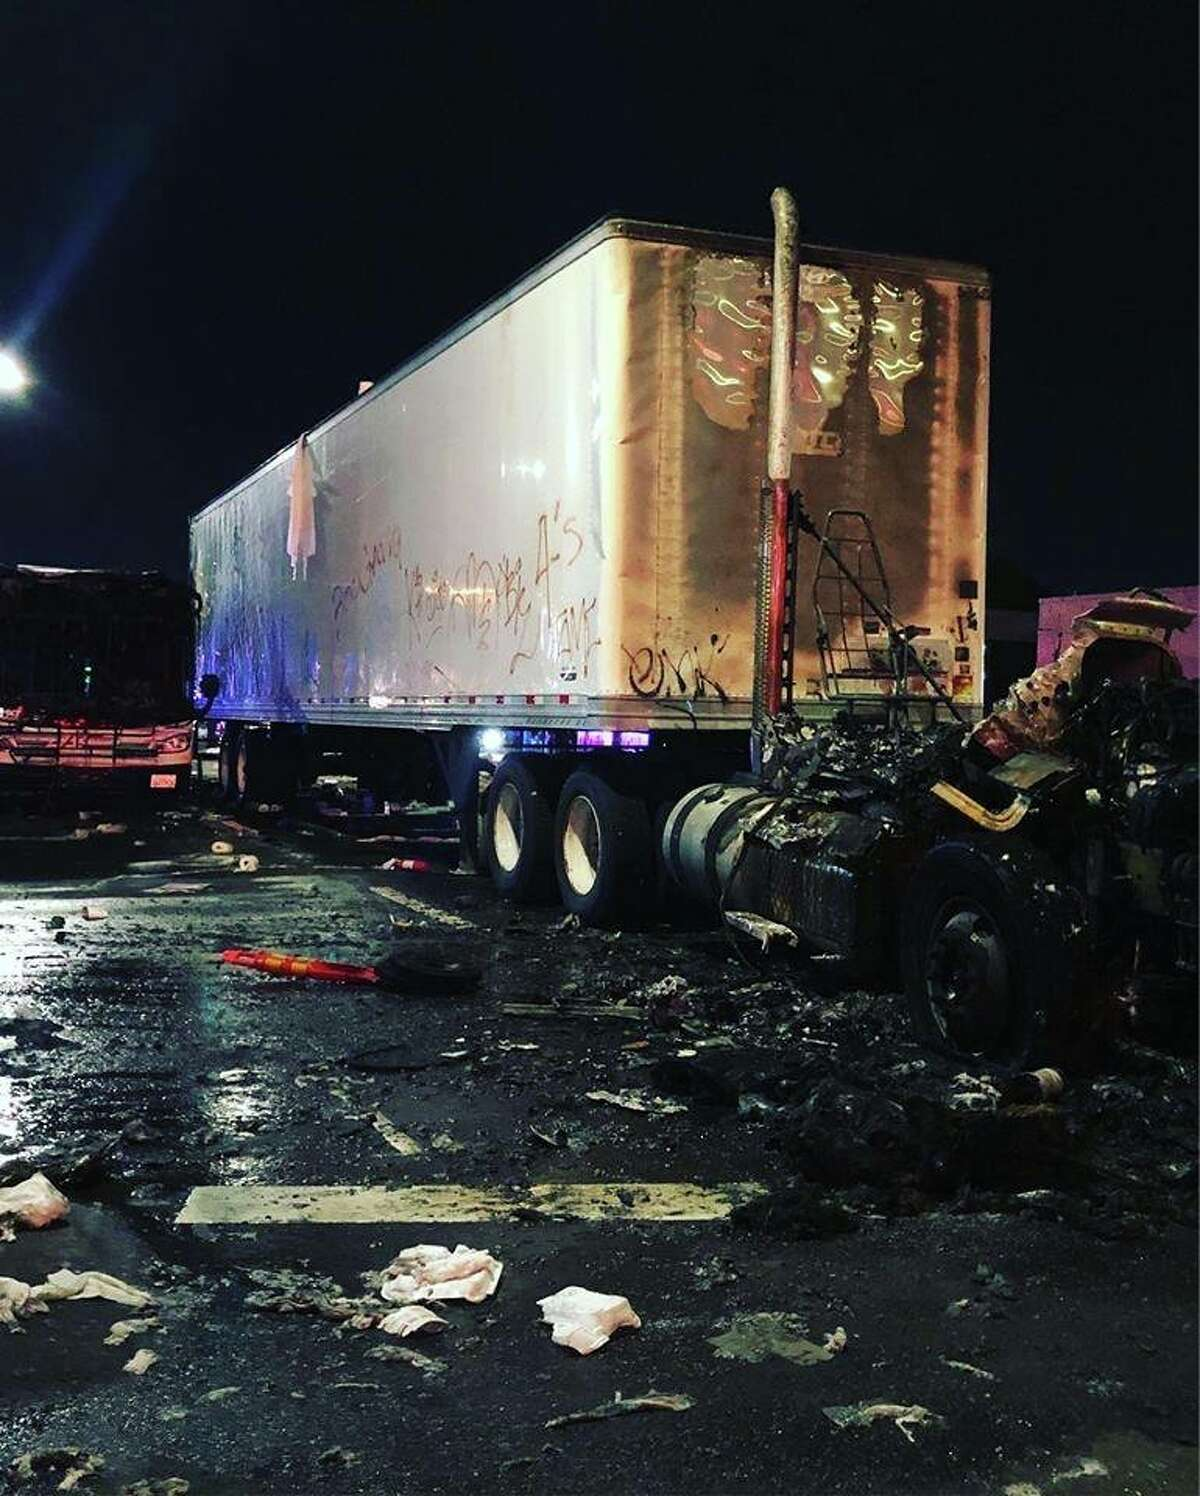 Photos of a sideshow in East Oakland on the night of April 14, 2019, show a big-rig truck and an AC Transit Bus damaged by fire.